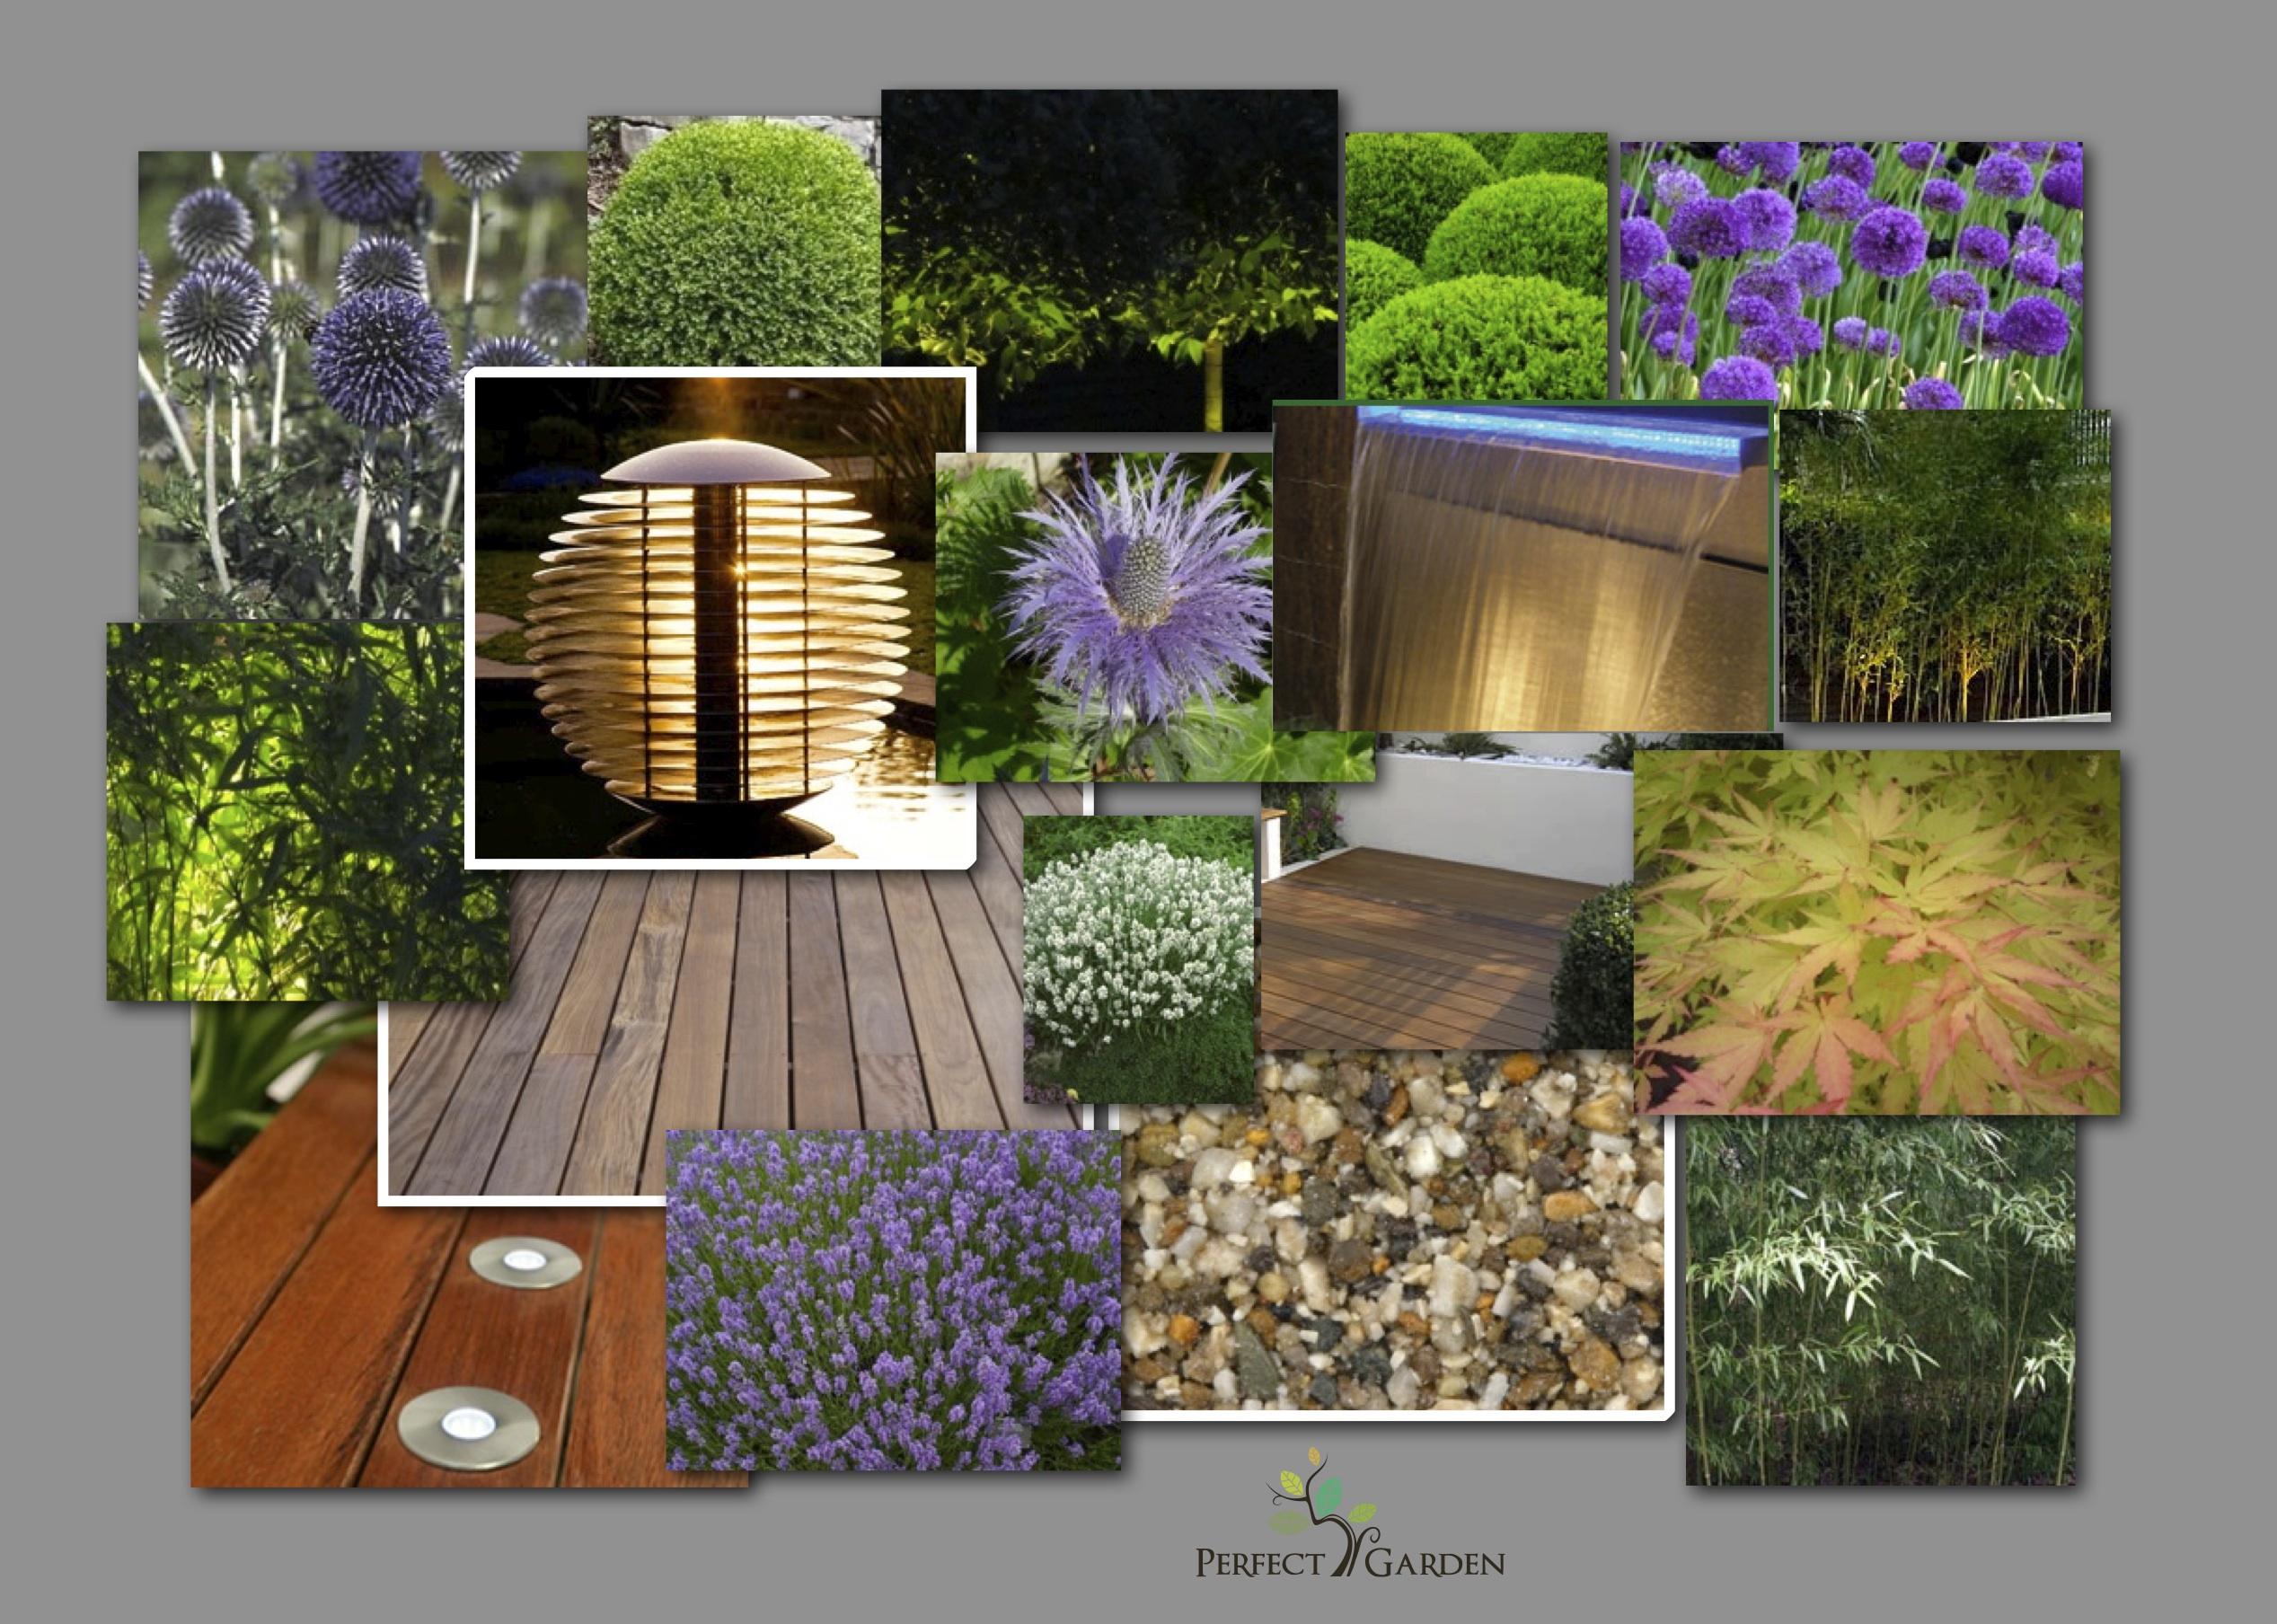 Perfect garden concept board perfect garden for Perfect garden design